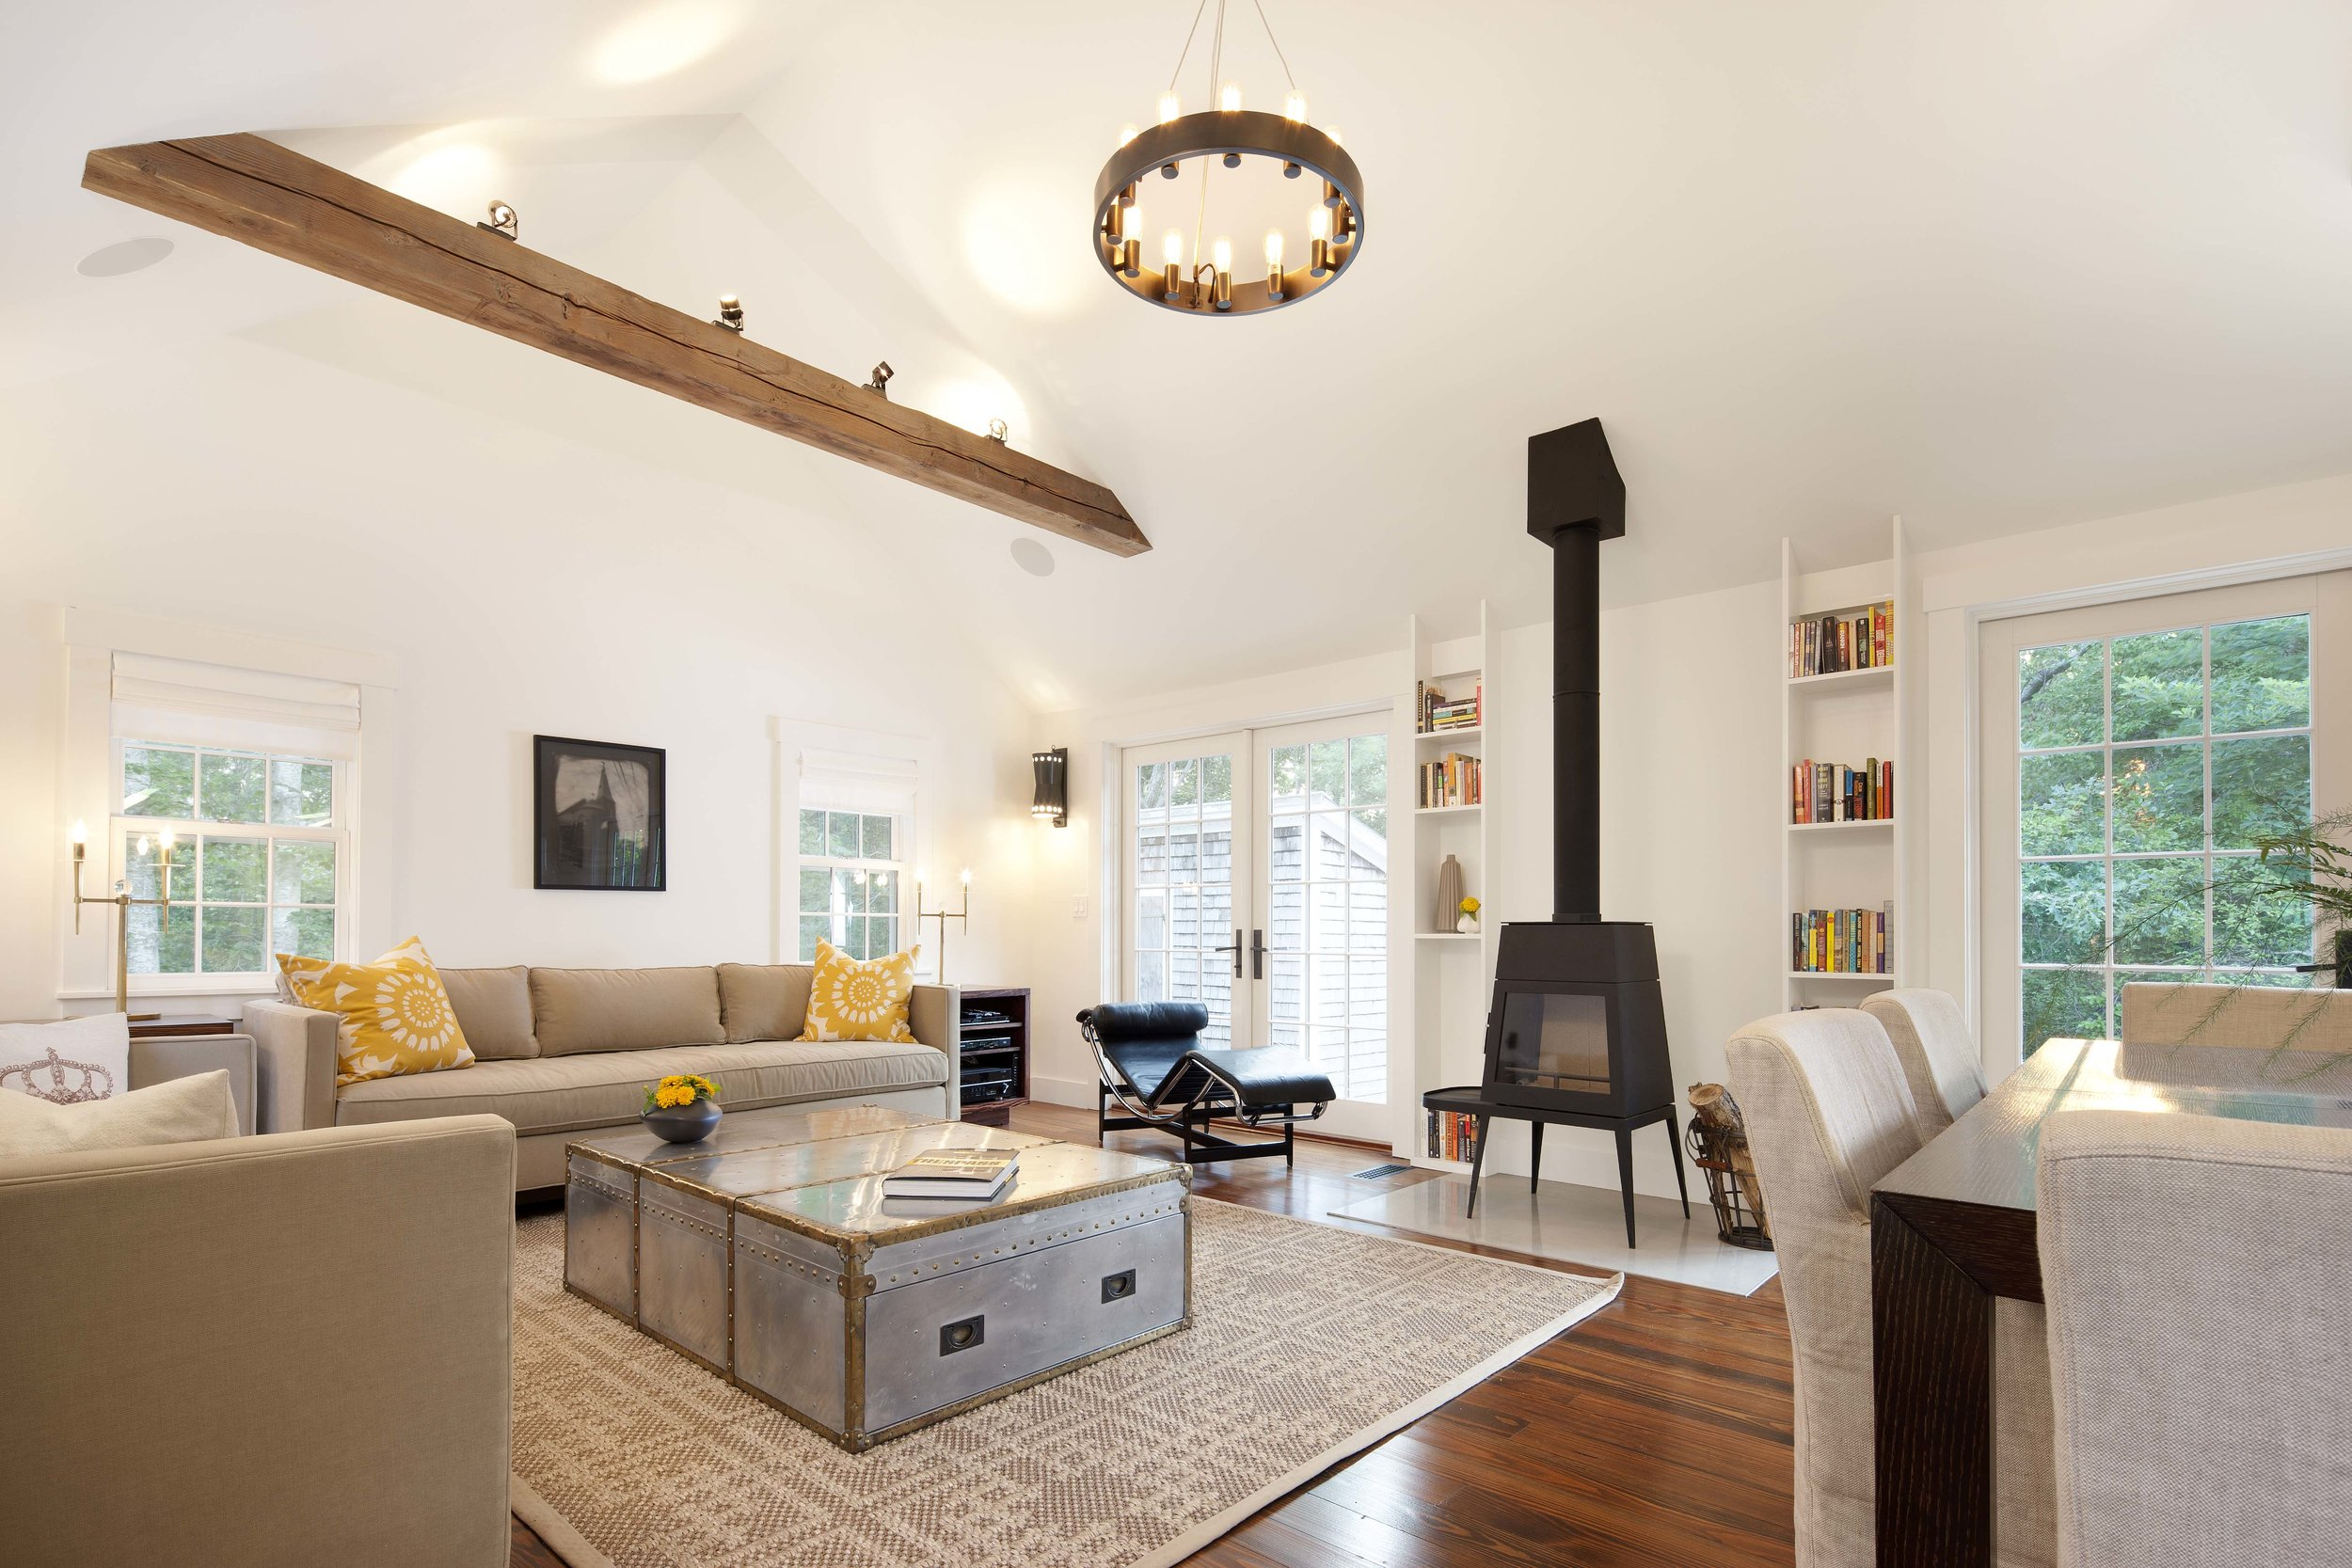 Living/dining space with contemporary wood stove.